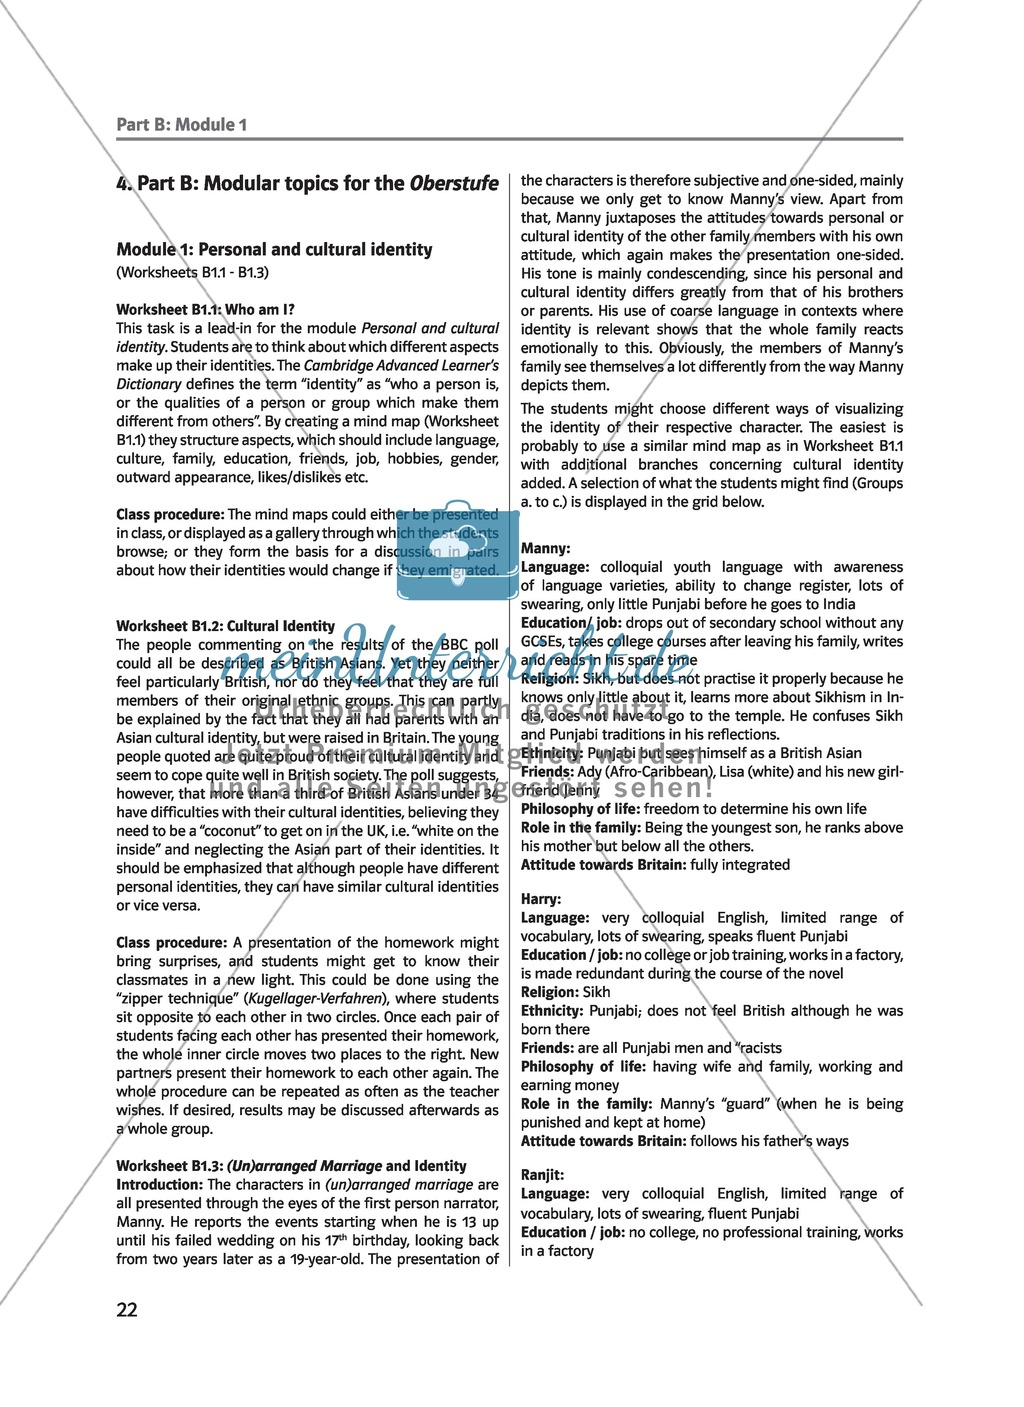 (Un)arranged marriage - Themen für die Oberstufe: Personal and cultural identity in general and in reference to the novel Preview 1